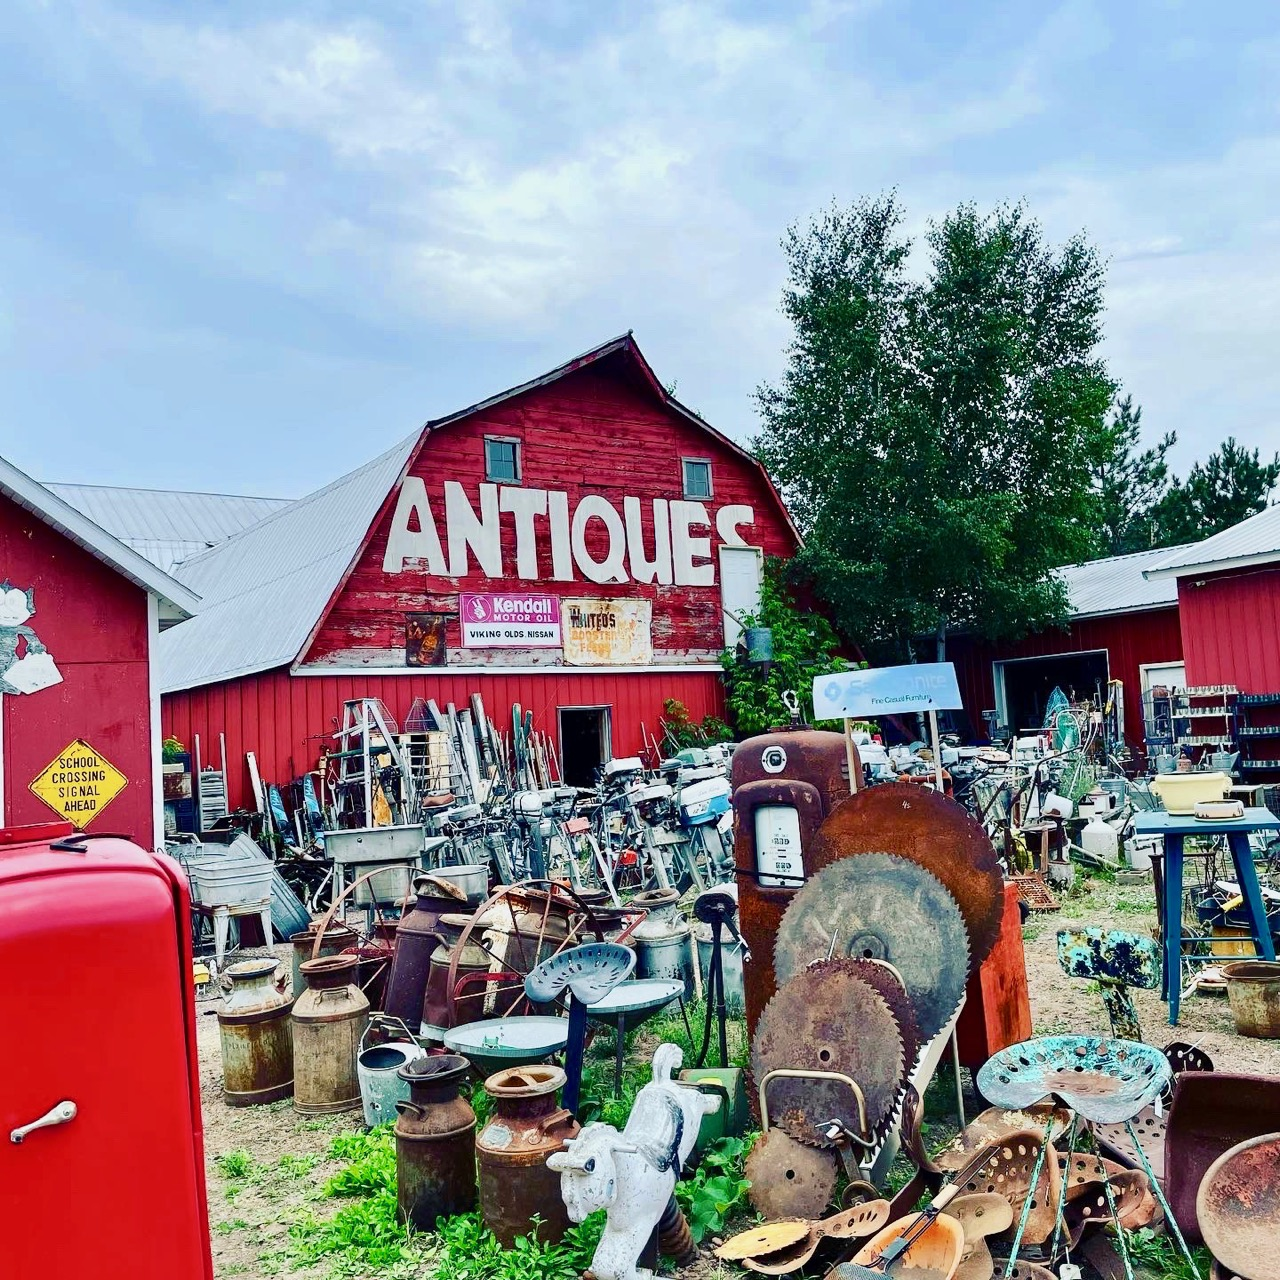 a red barn full of antiques